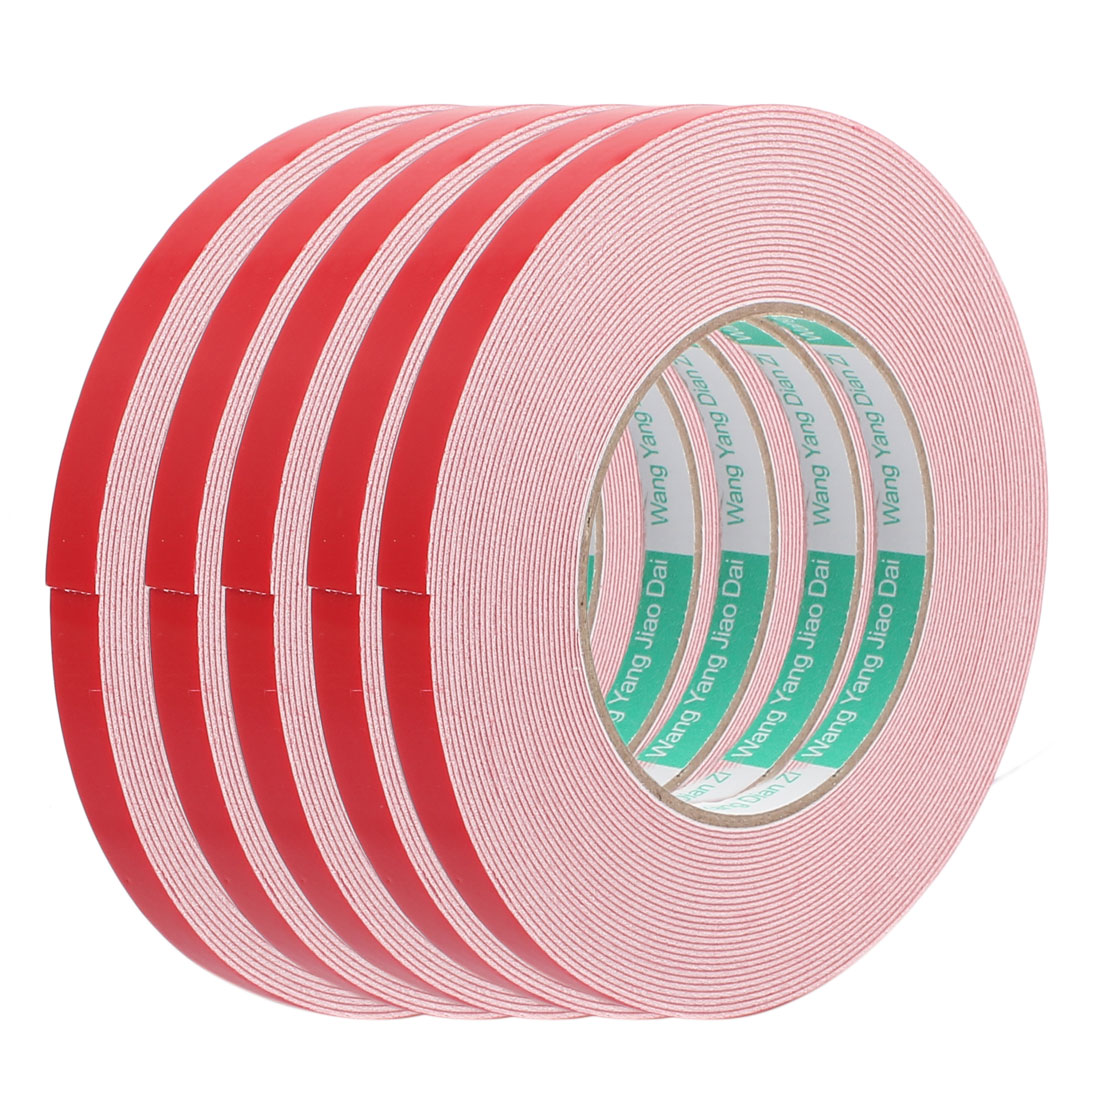 5pcs 10M 10mm x 1mm Double-side Adhesive Shockproof Sponge EVA Tape Red White